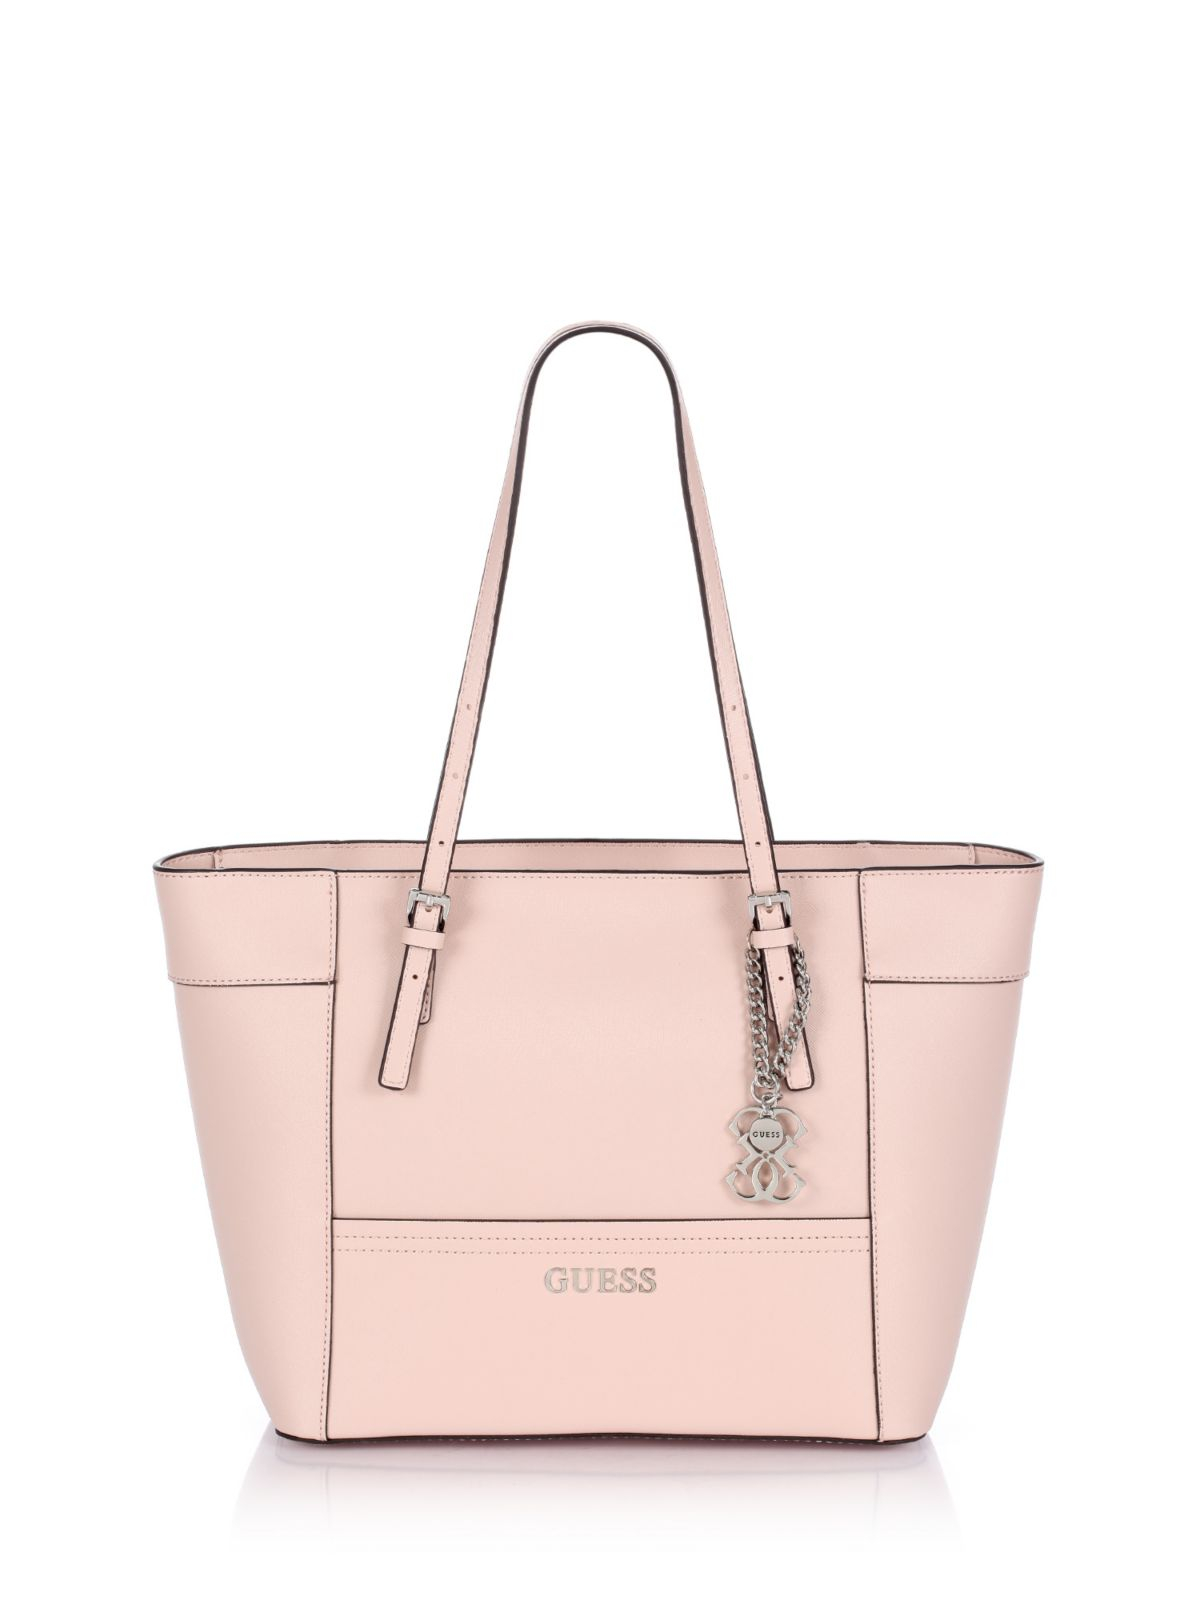 Guess Delaney Small Classic Tote Bag in Pink | Lyst